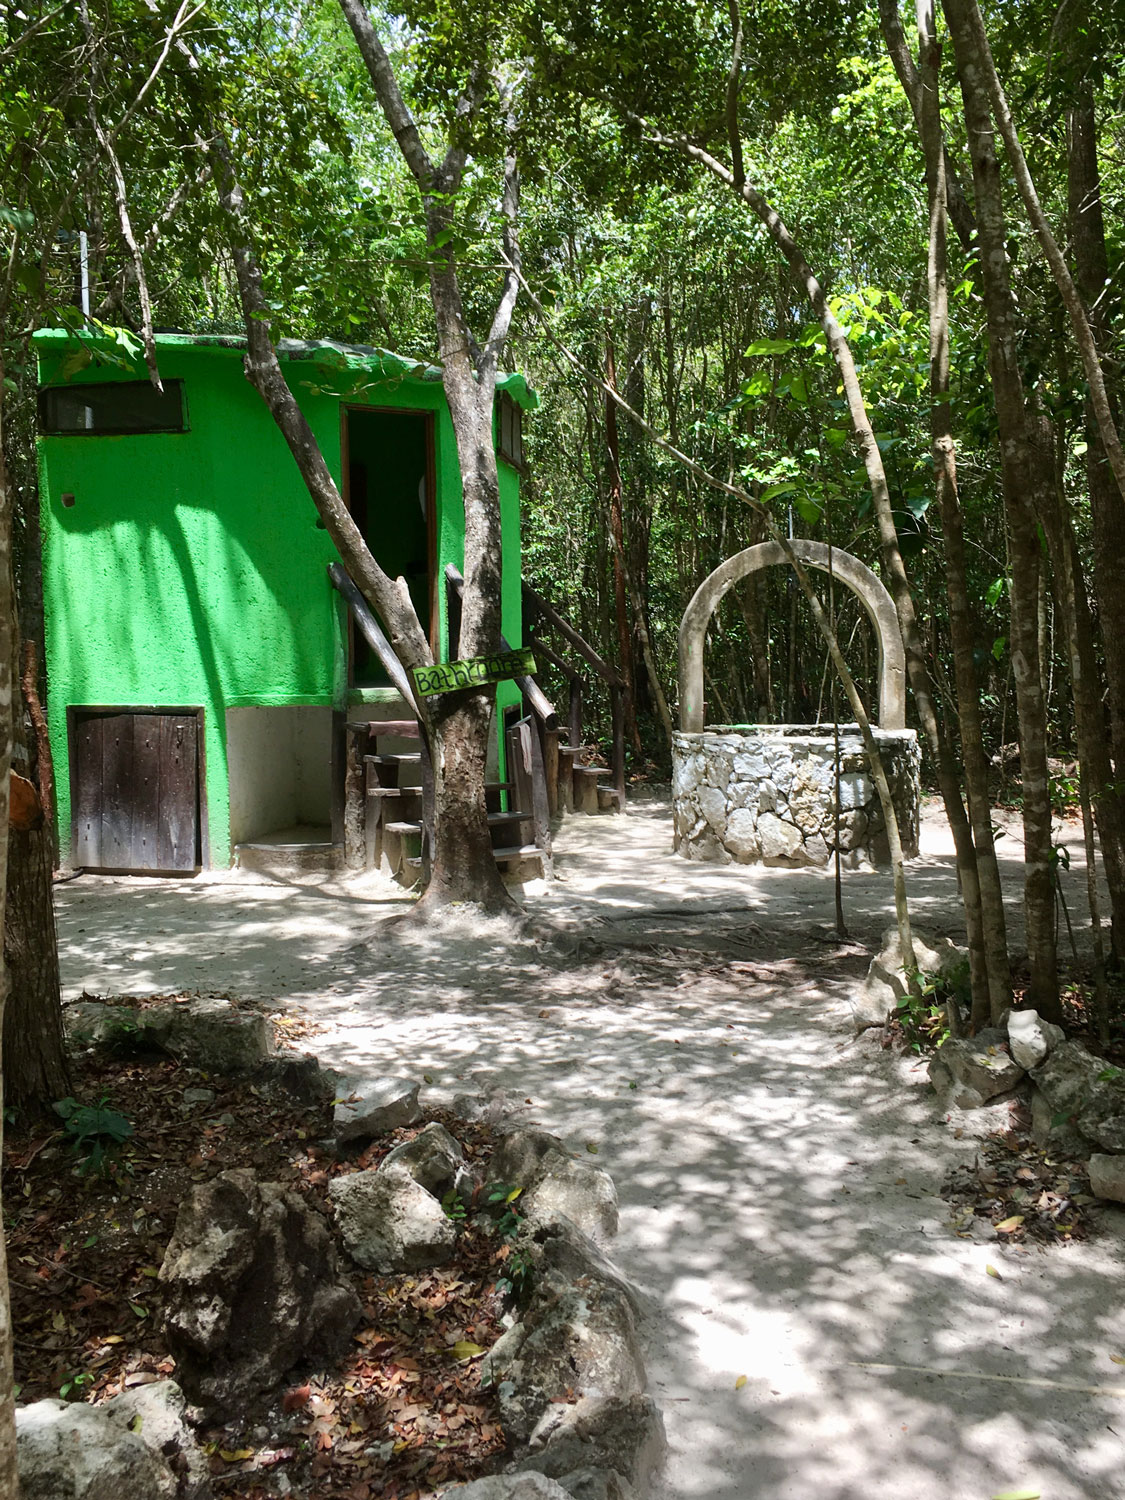 The restrooms and the well.